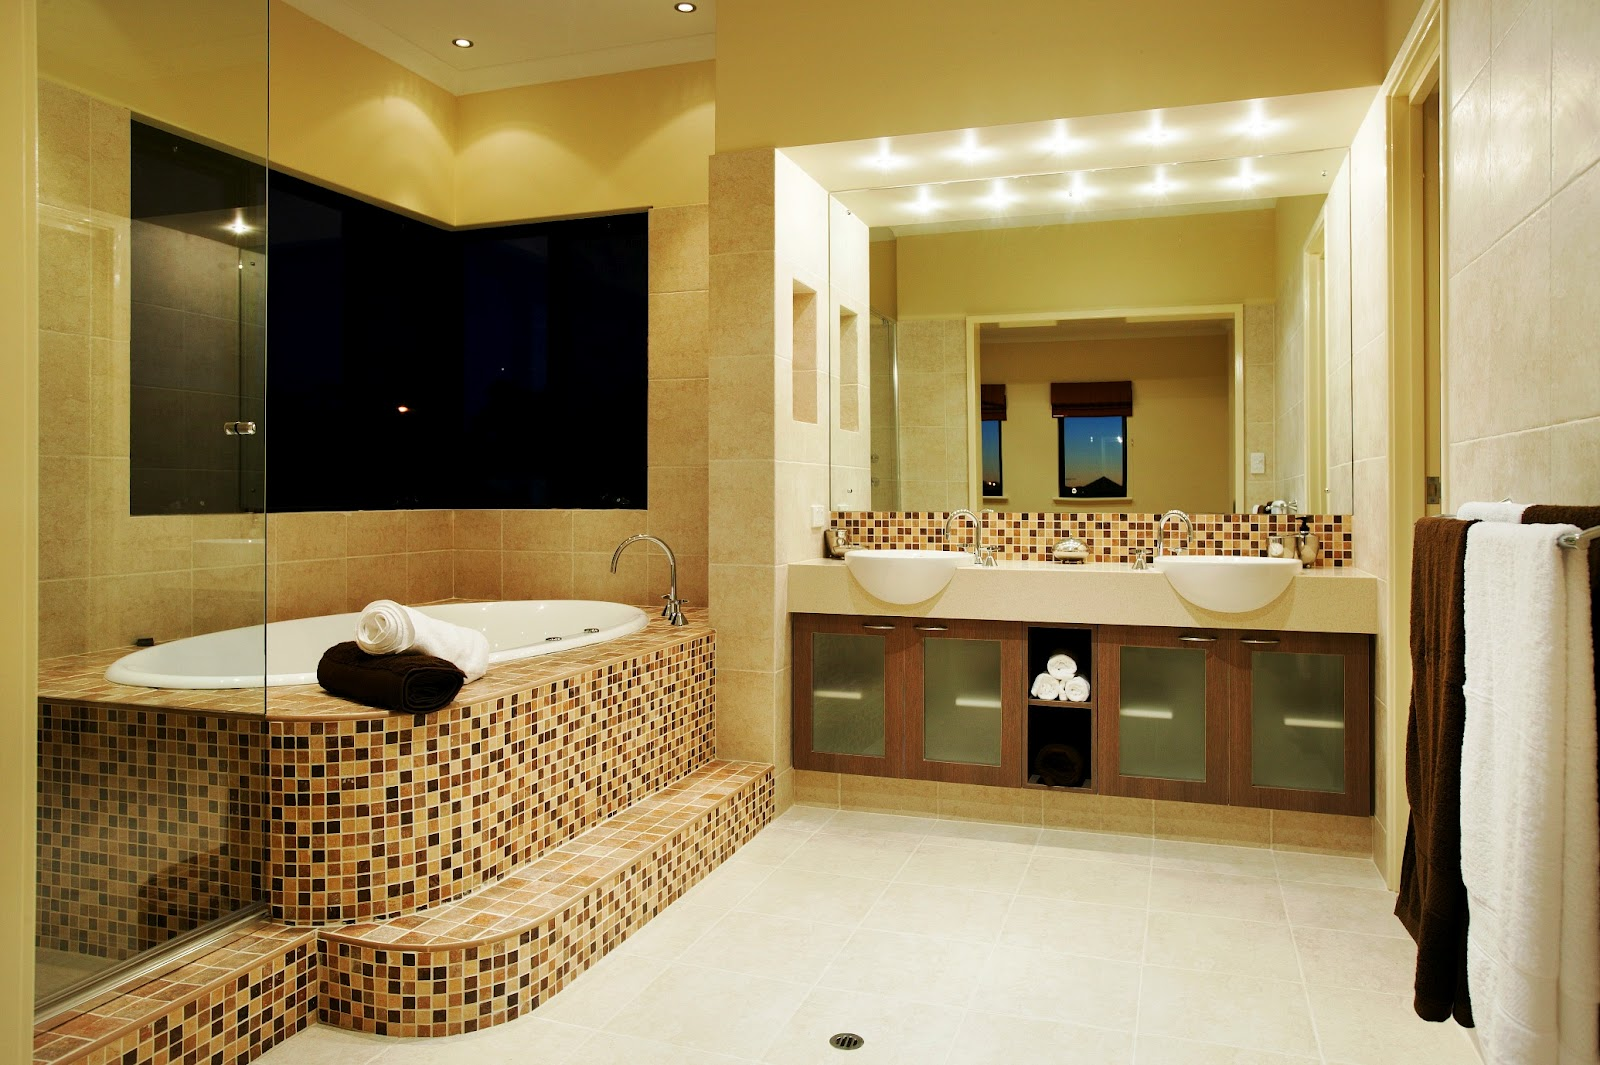 Fashion Hairstyle Celebrities: Home Bathroom Designs|Bathroom Wall ...